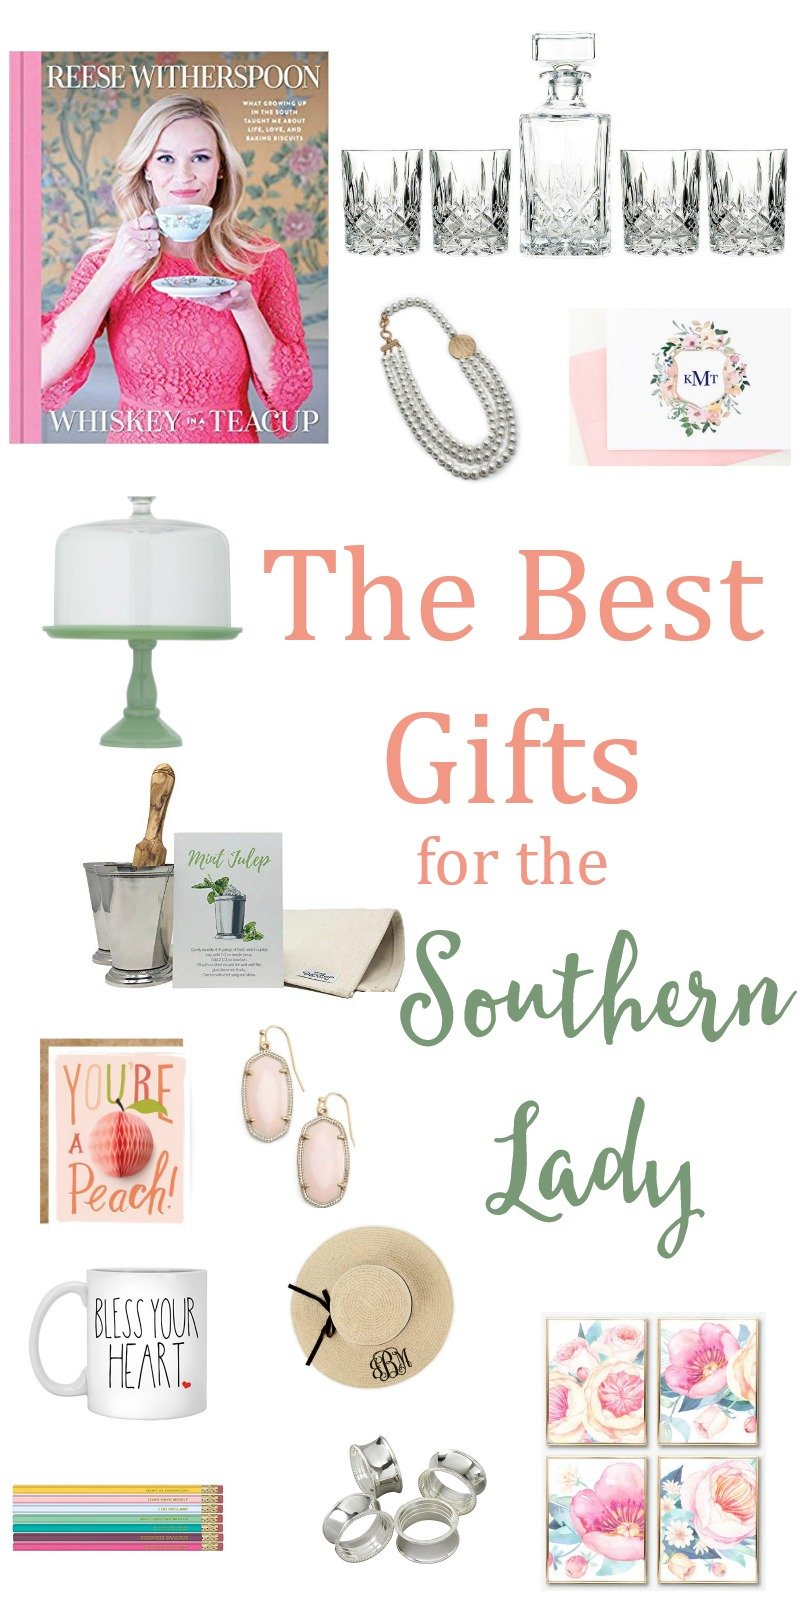 The Best Gifts for the Southern Lady // Life Anchored